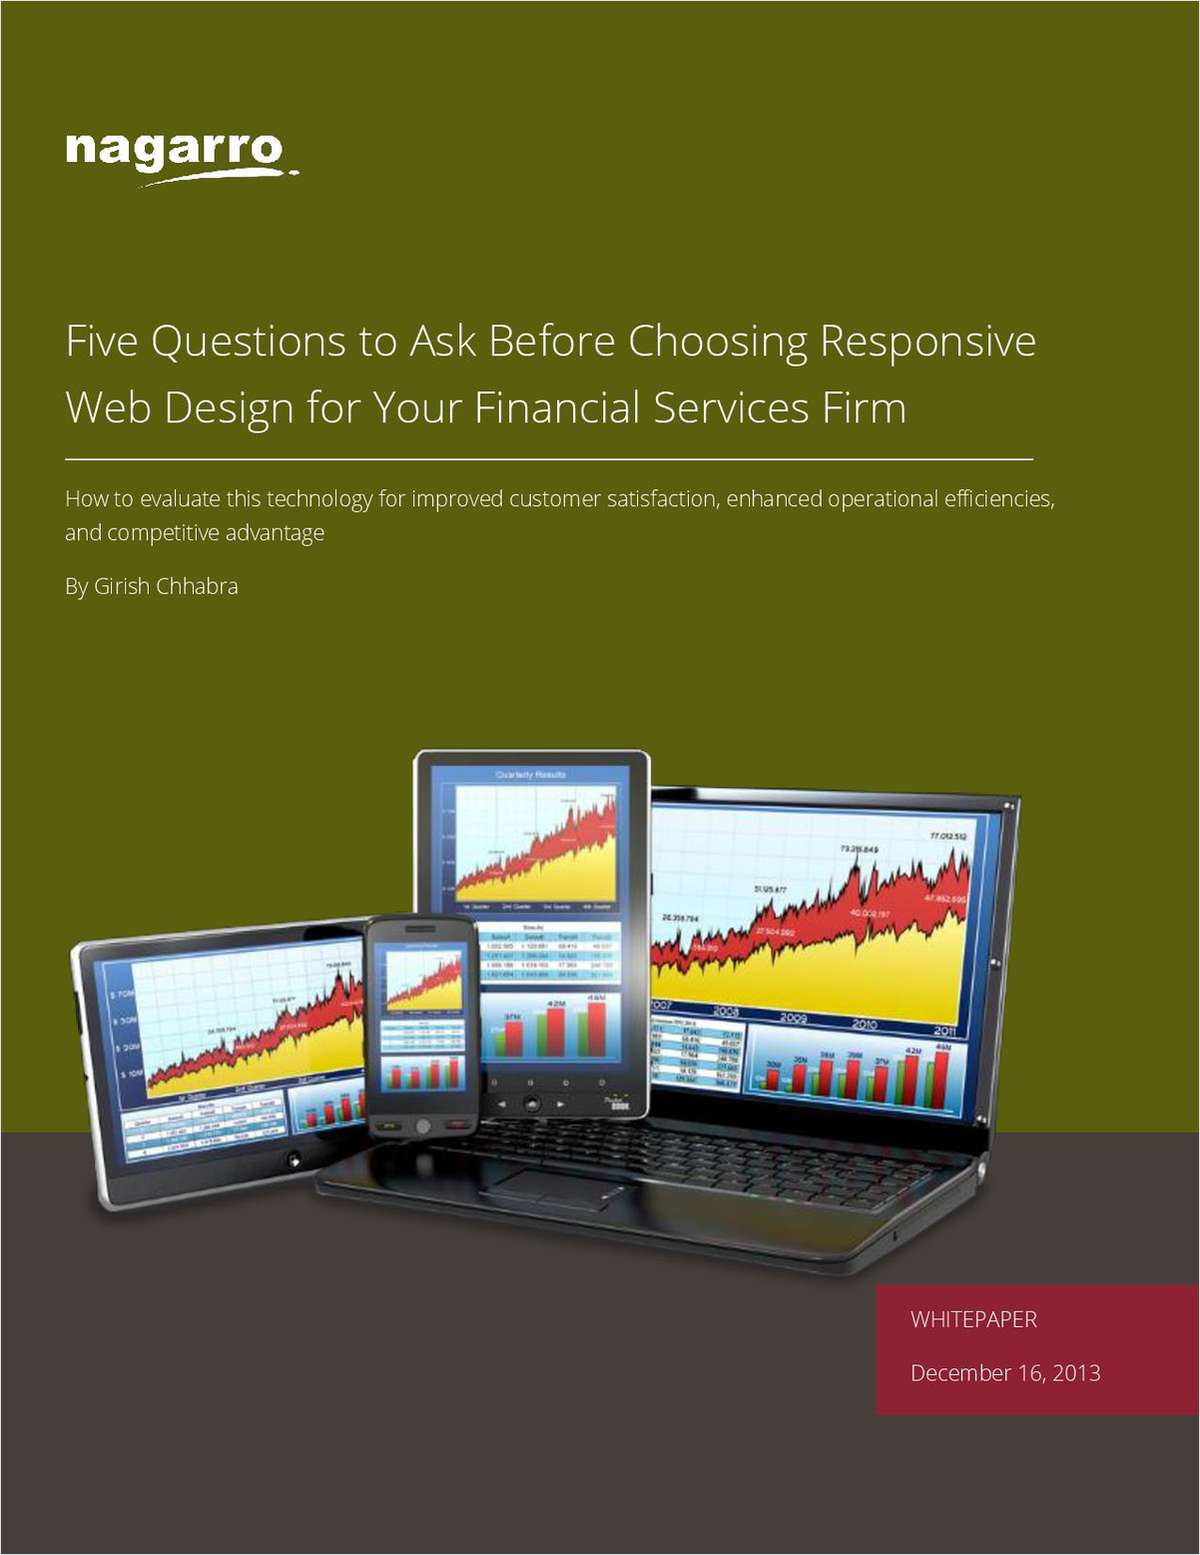 Five Questions to Ask Before Choosing Responsive Web Design for Your Financial Services Firm